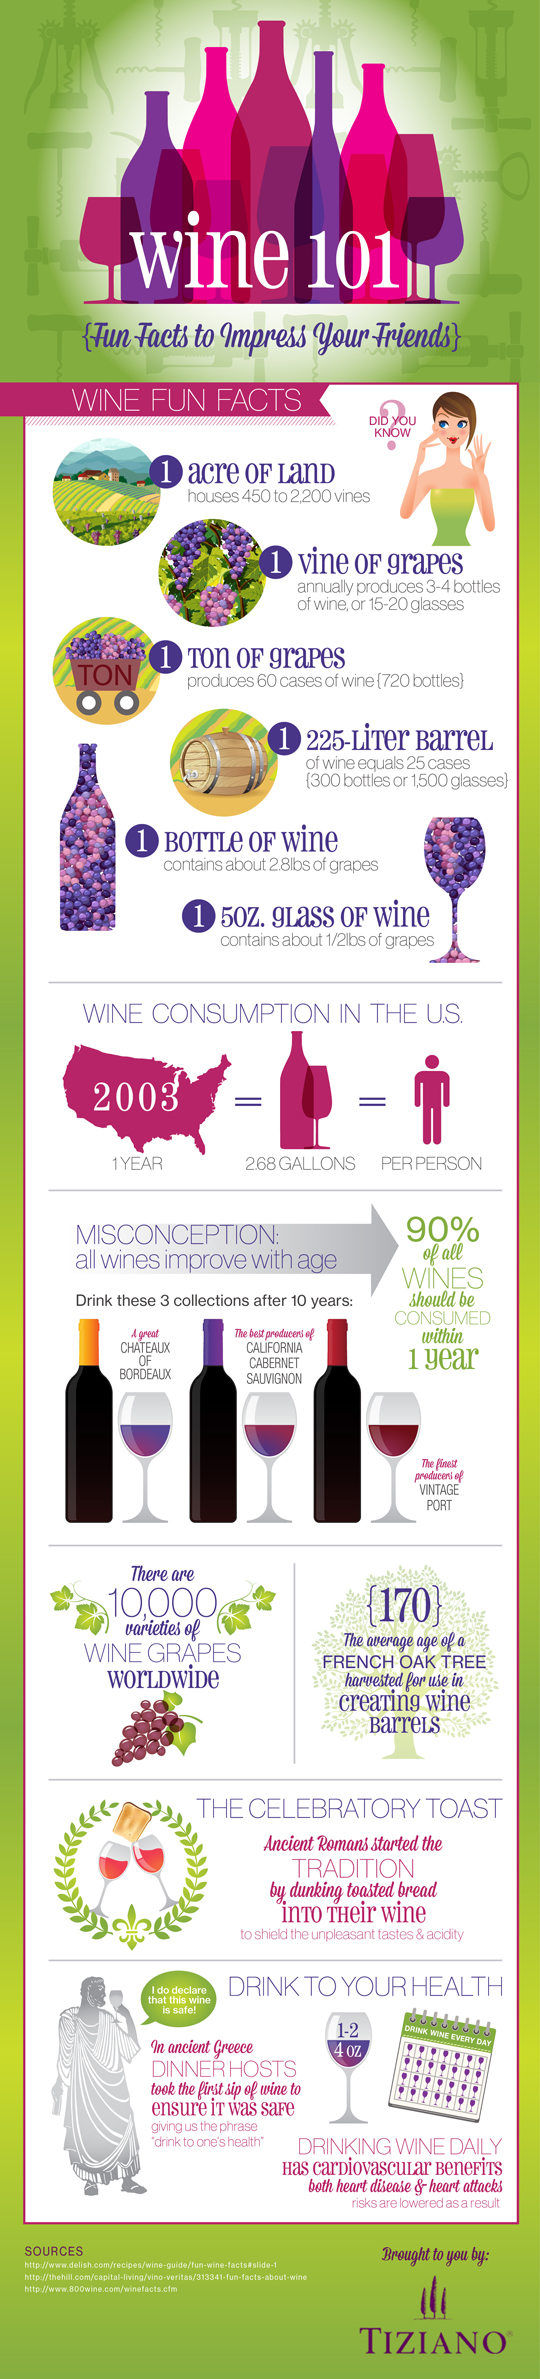 Fun Facts About Wine, findingourwaynow.com